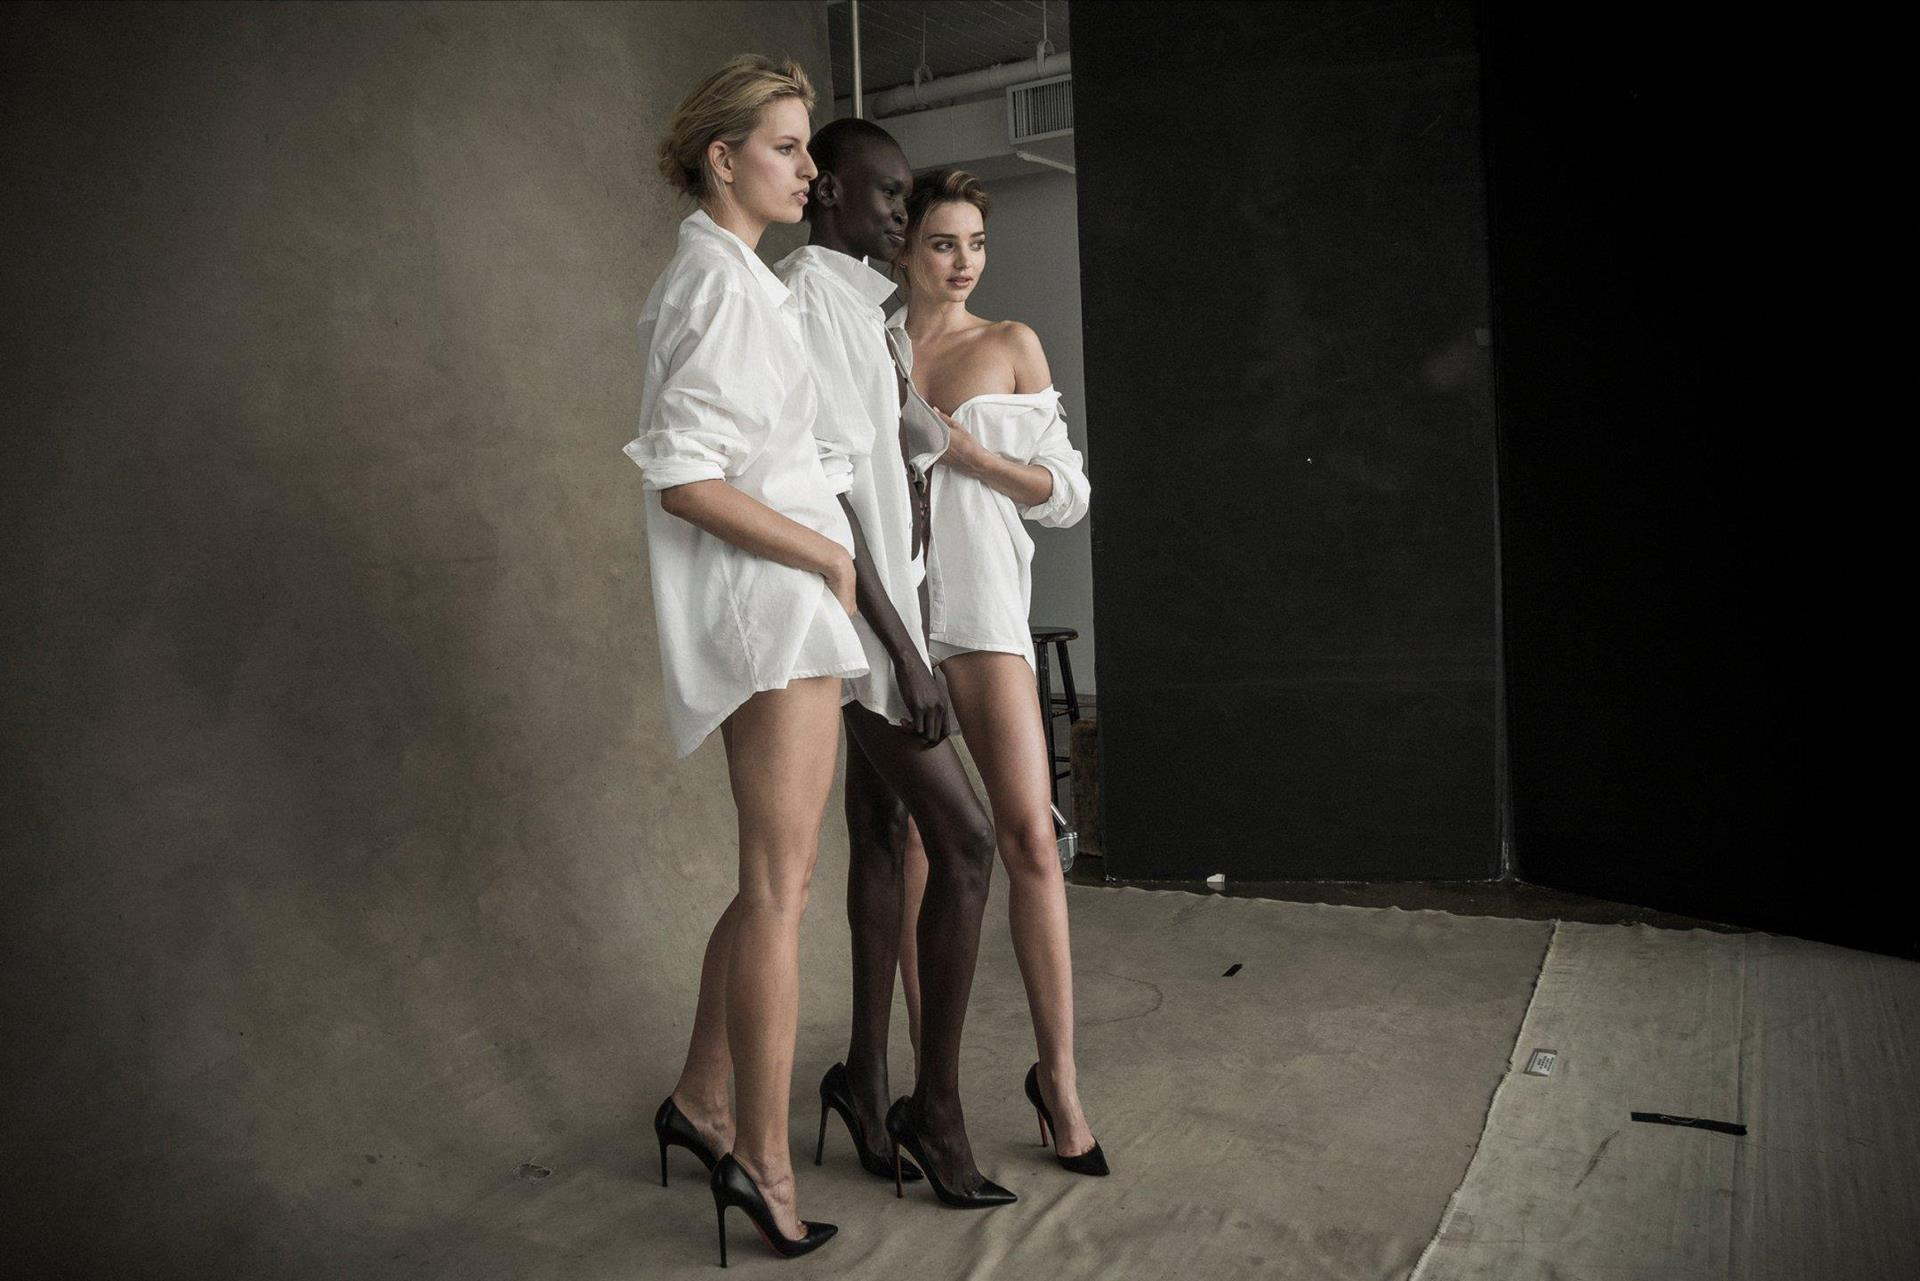 calendrier-pirelli_backstage_shooting_photos_01